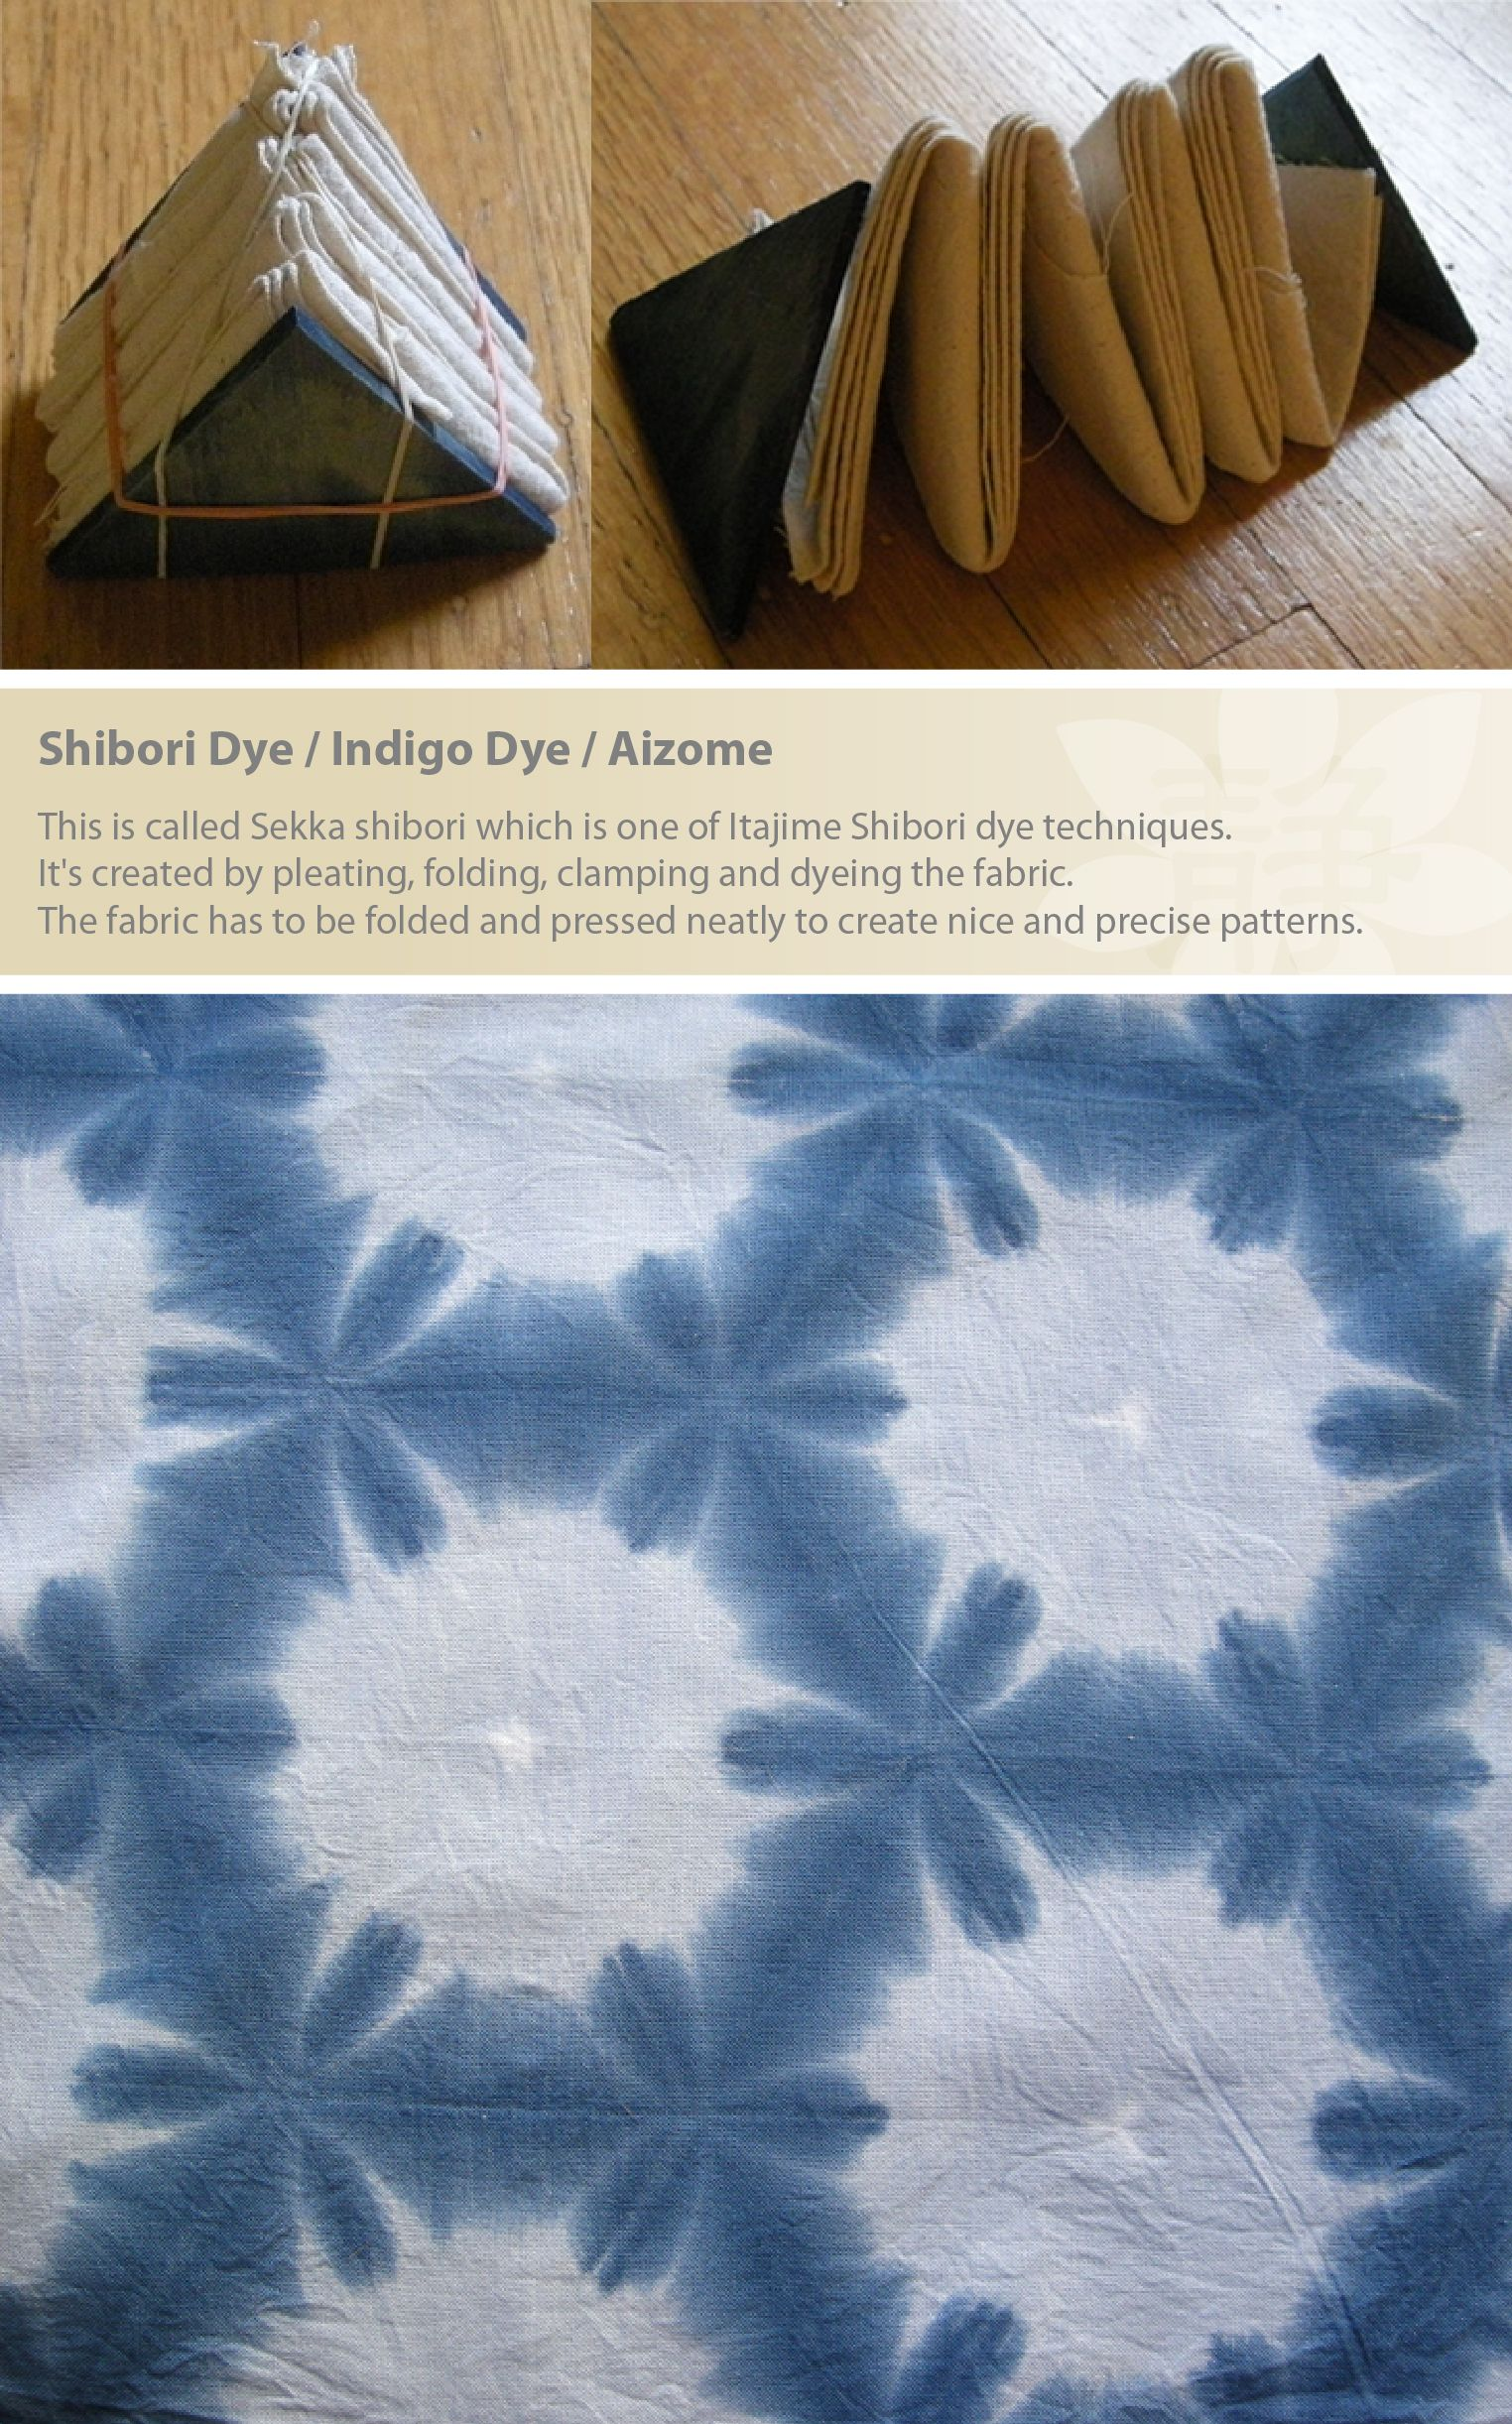 5bf3394a43f33 This is called Sekka shibori which is one of Itajime Shibori dye  techniques. It's created by pleating, folding, clamping and dyeing the  fabric.